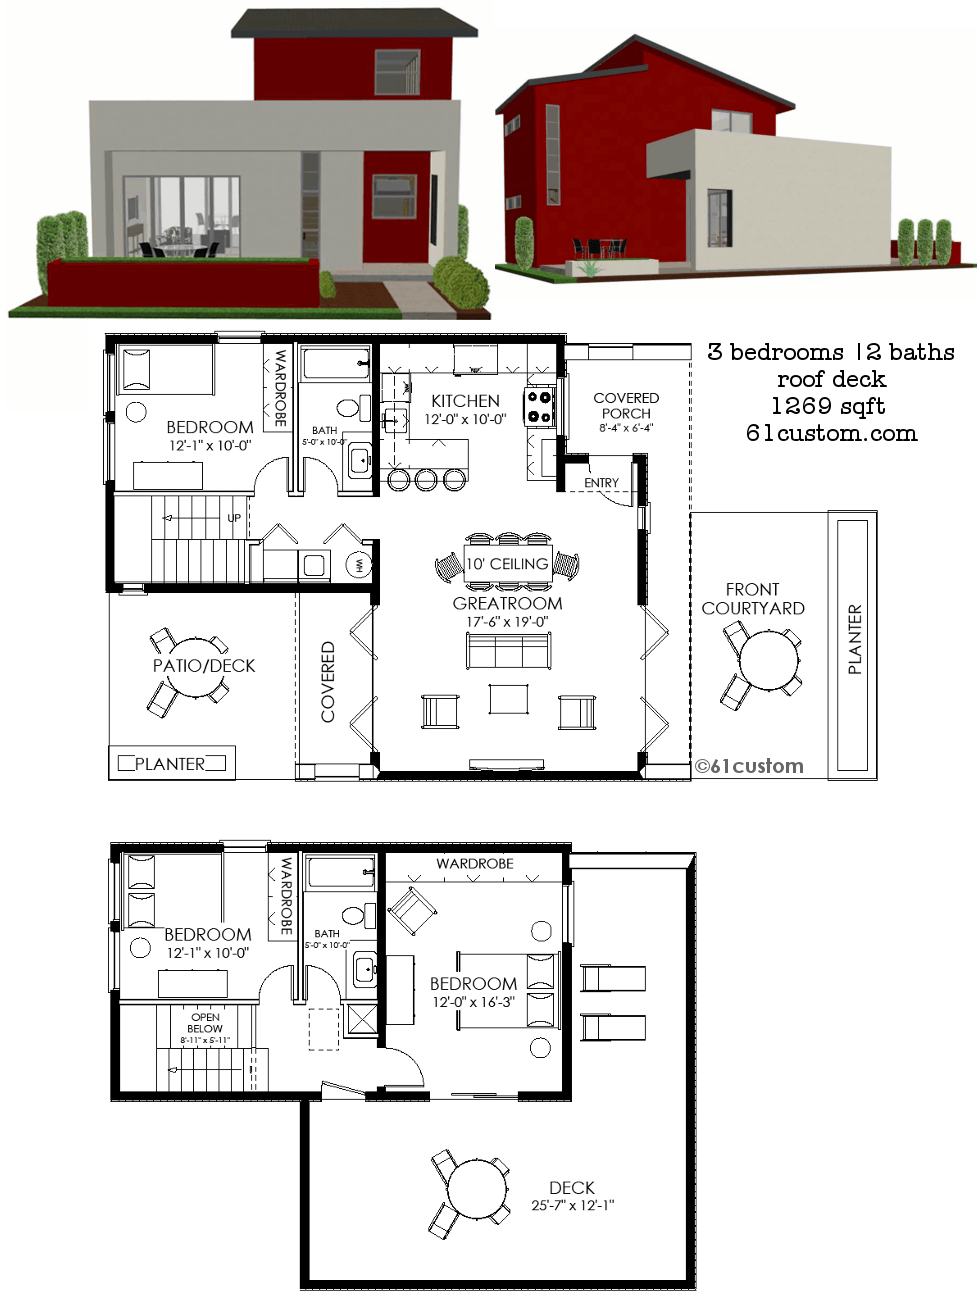 Contemporary small house plan 61custom contemporary for Blueprint designs for houses